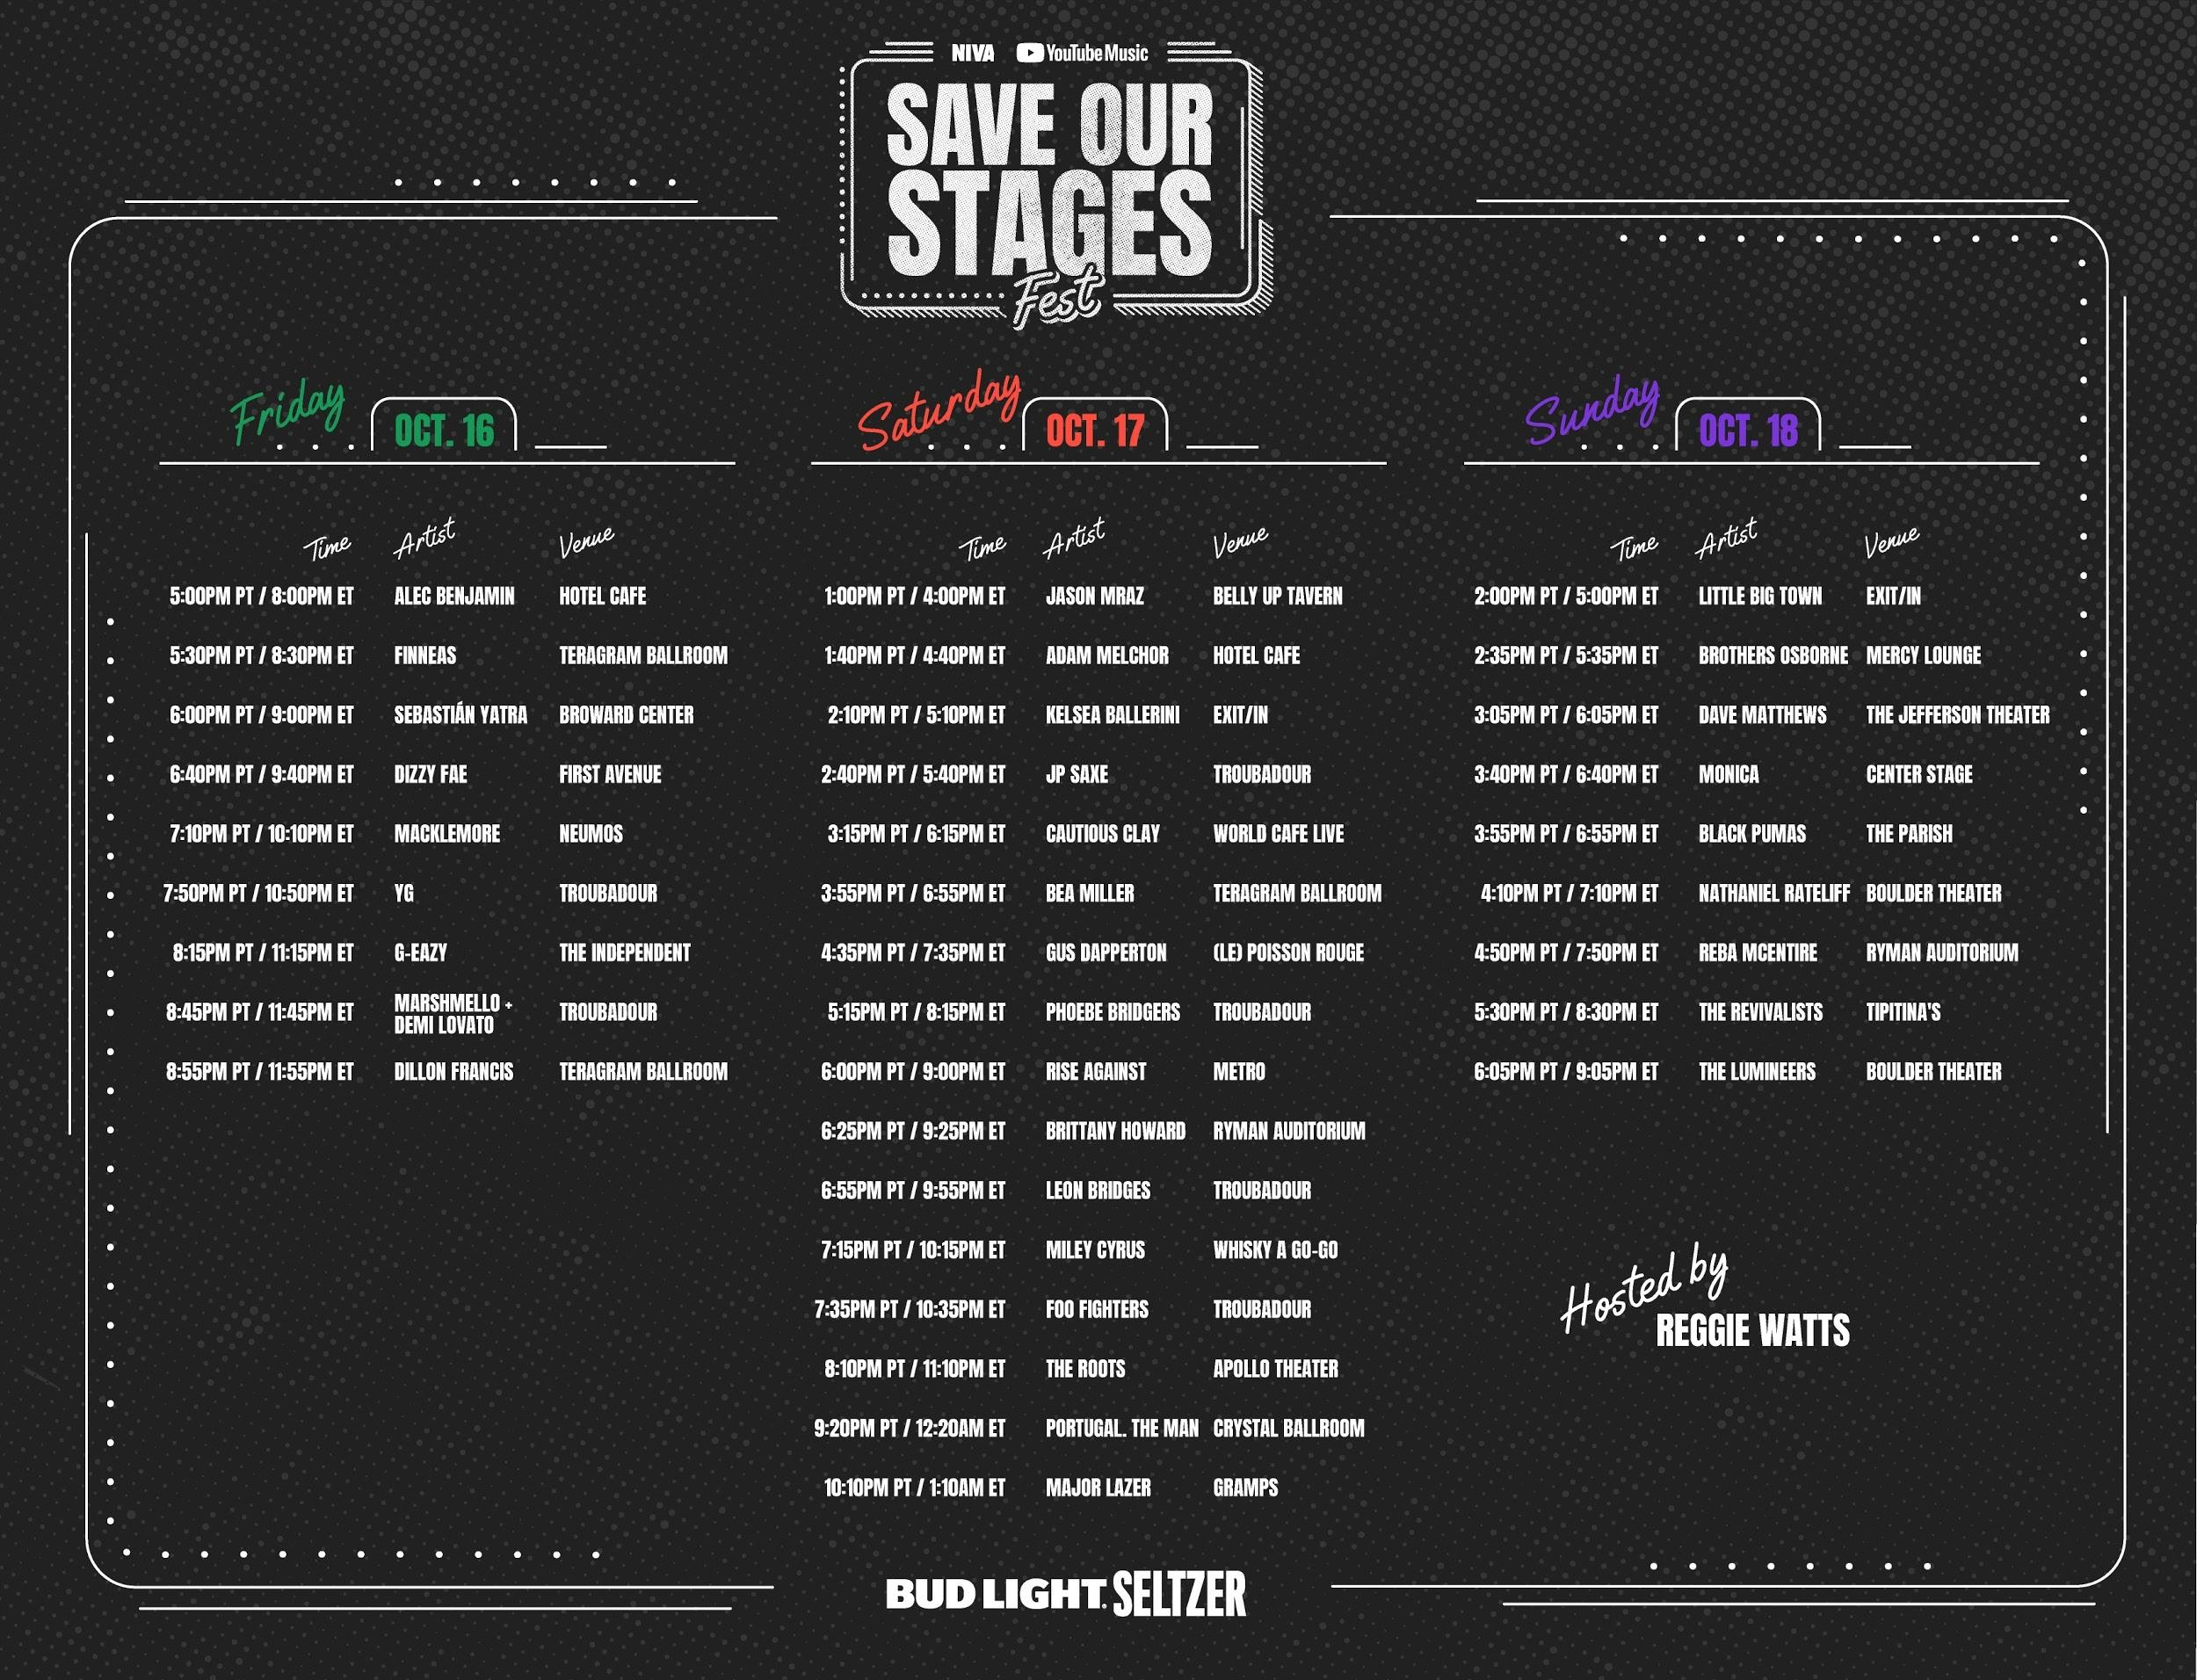 SAVE OUR STAGES FEST (#SOSFEST) DAILY SCHEDULE